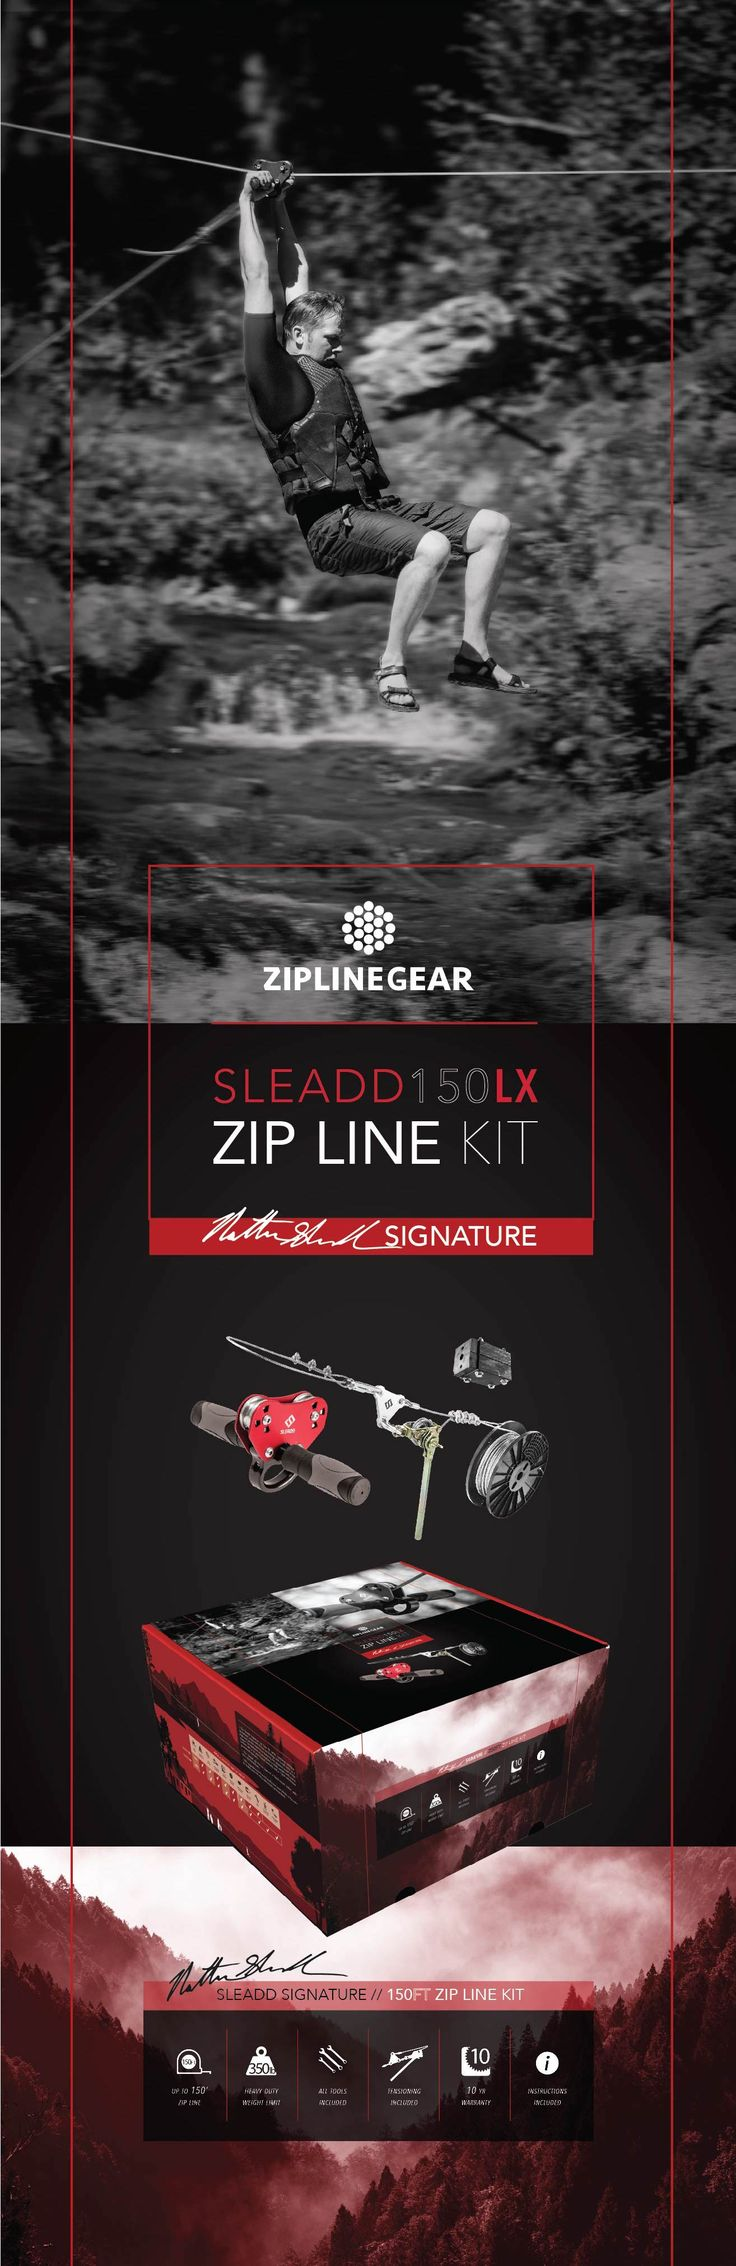 22 best zip line kits images on pinterest backyards safety and